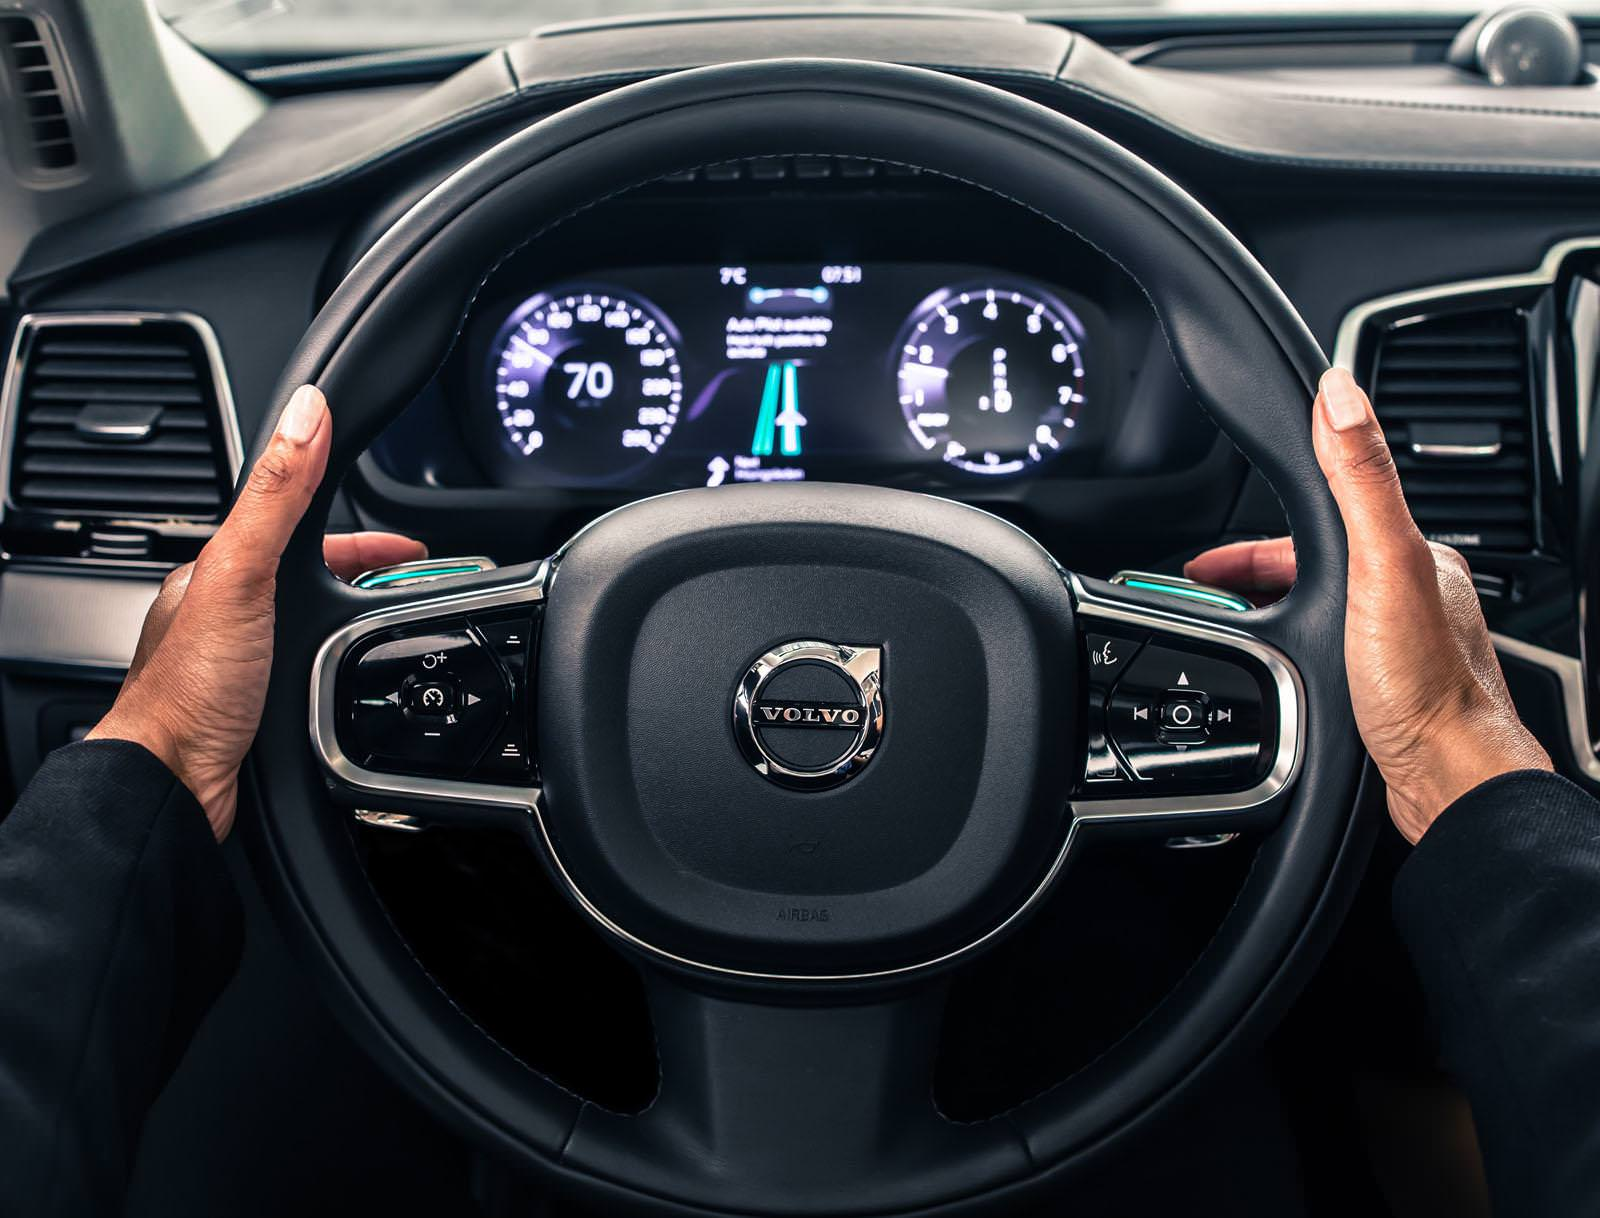 Reasons why you feel struggling with your steering wheel